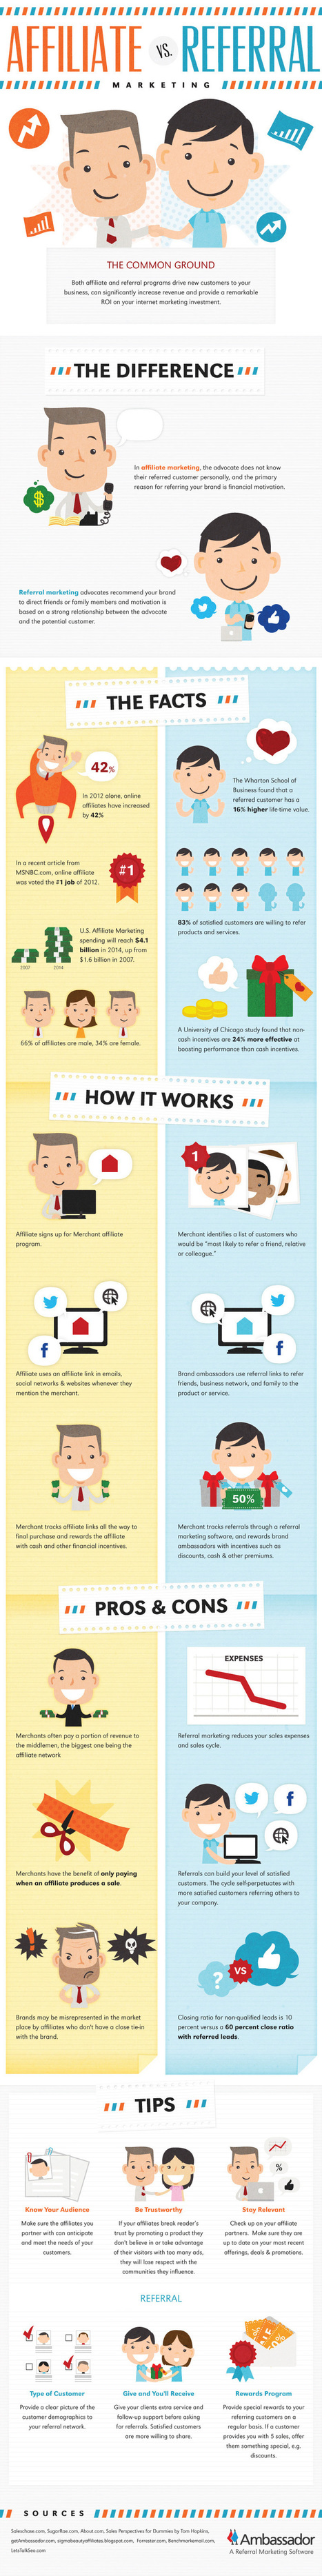 Affiliate vs. Referral Marketing Differences (Infographic) - Business 2 Community | VinitVerma | Scoop.it